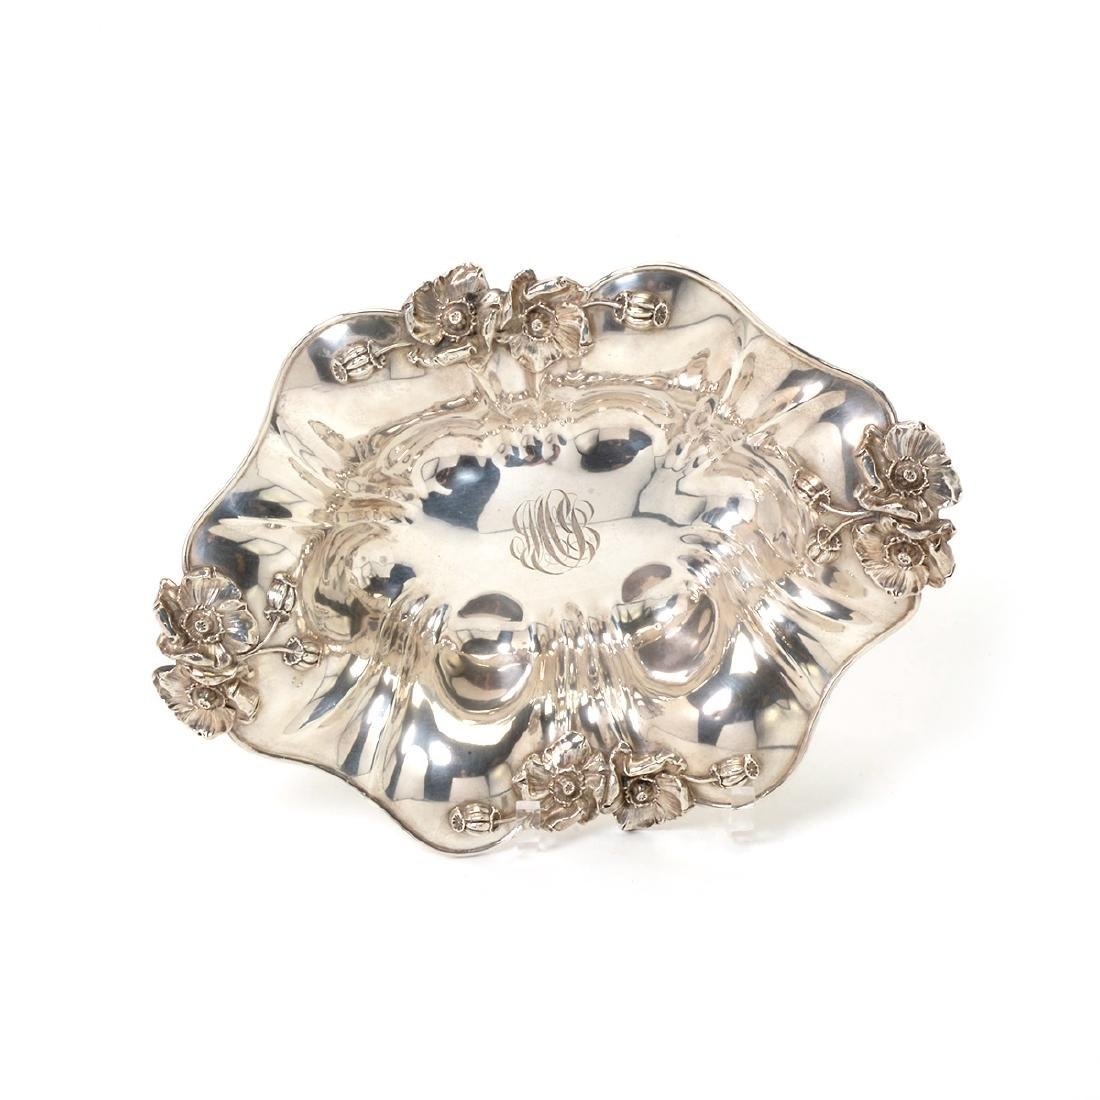 Art Nouveau Sterling Bowl with Floral Decoration - 2